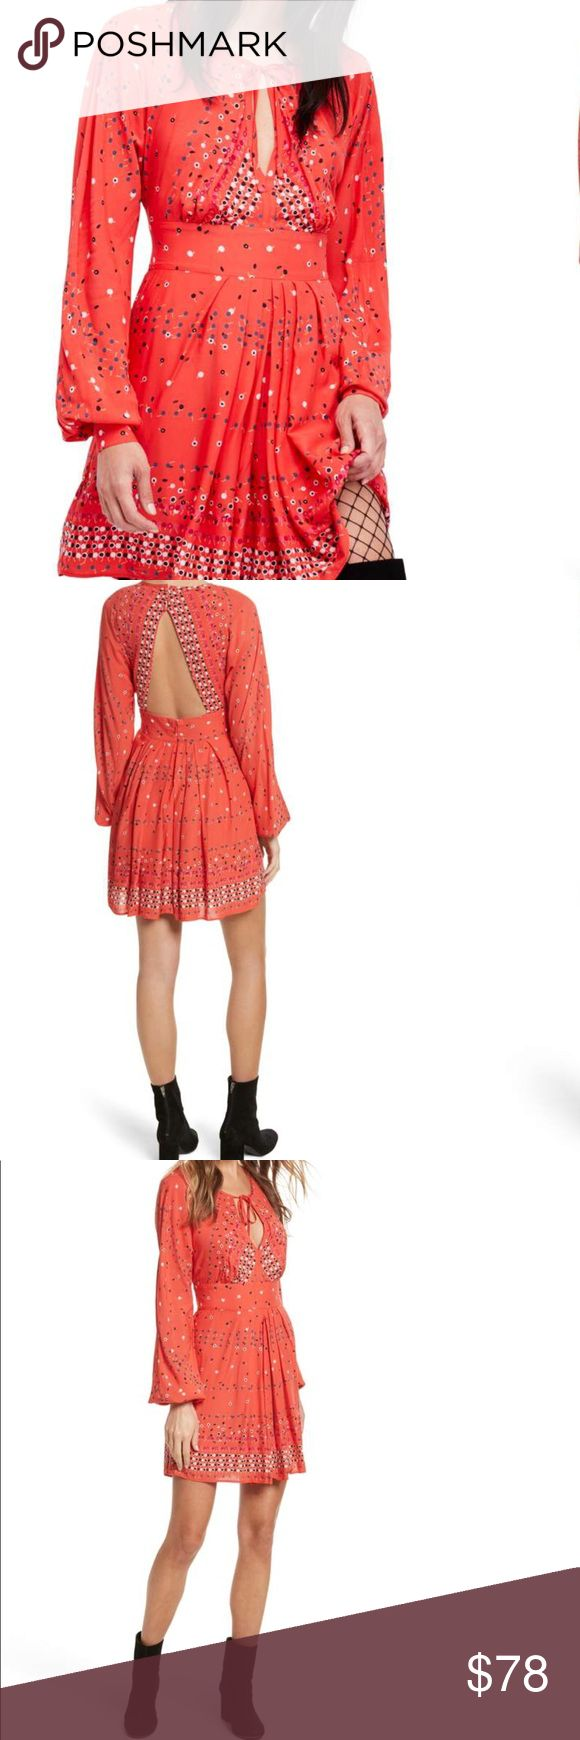 ☀️ Free People Mini Dress ☀️ Gorgeous coral-colored dress that embodies everything about Free People - embracing the spirit of romance with a rock n' roll edge. This dress features a colorful print and a triangular keyhole back define this versatile fit-and-flare minidress boasting plenty of boho charm. Free People Dresses